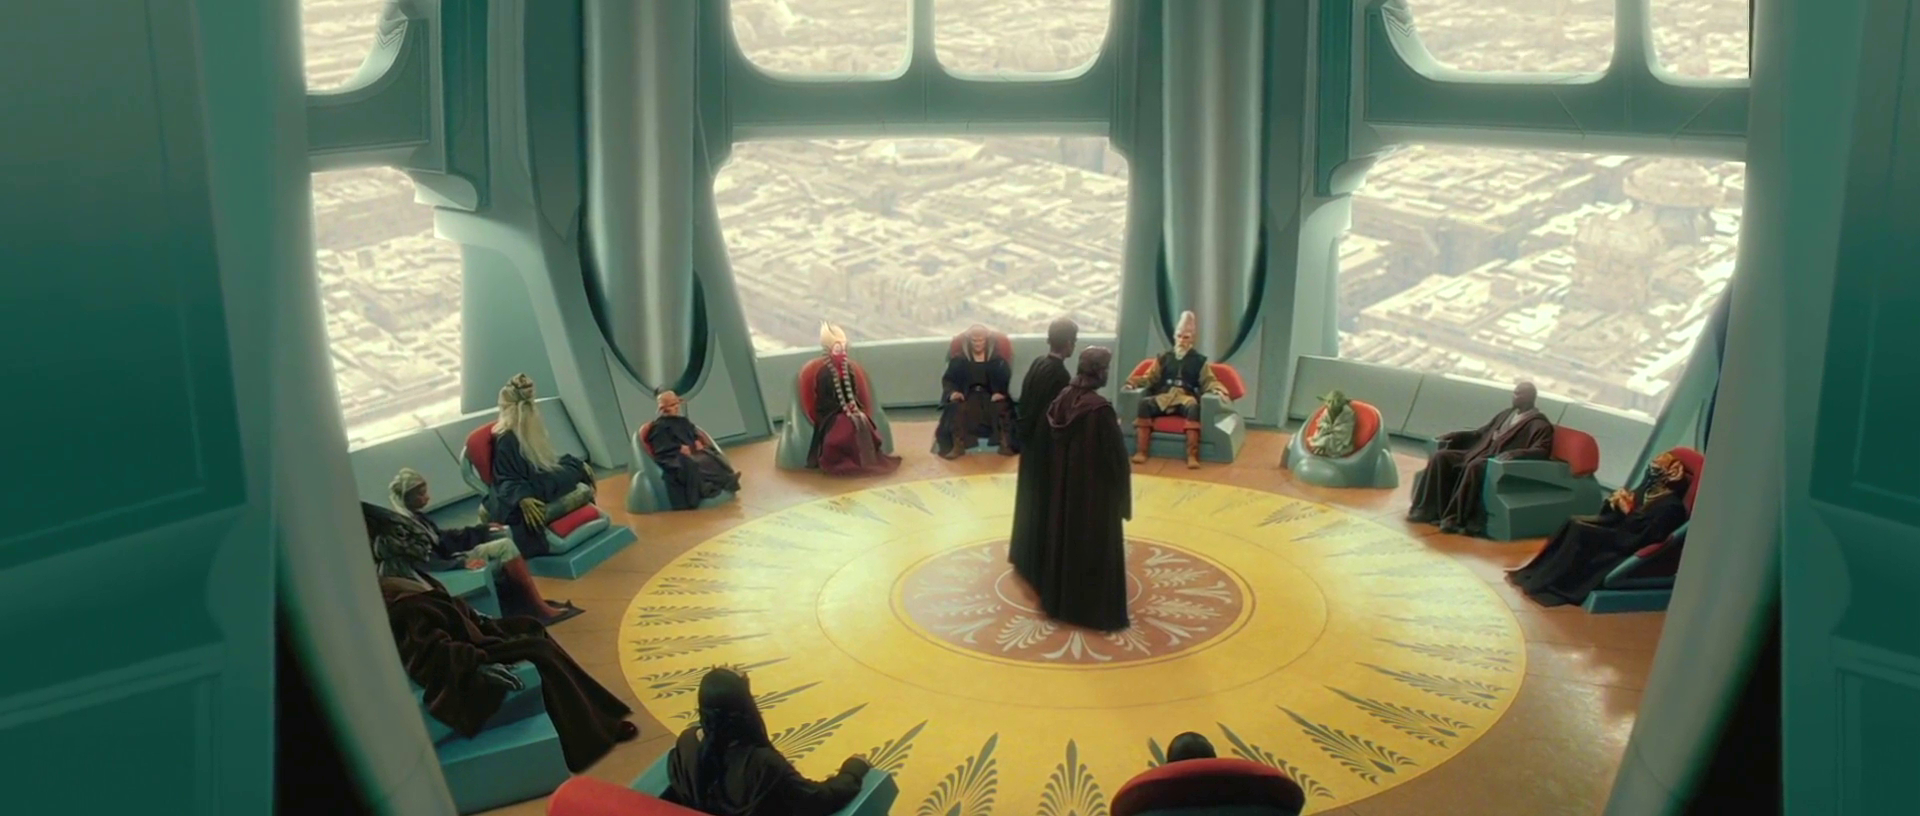 High Council Chamber Jedicouncil2